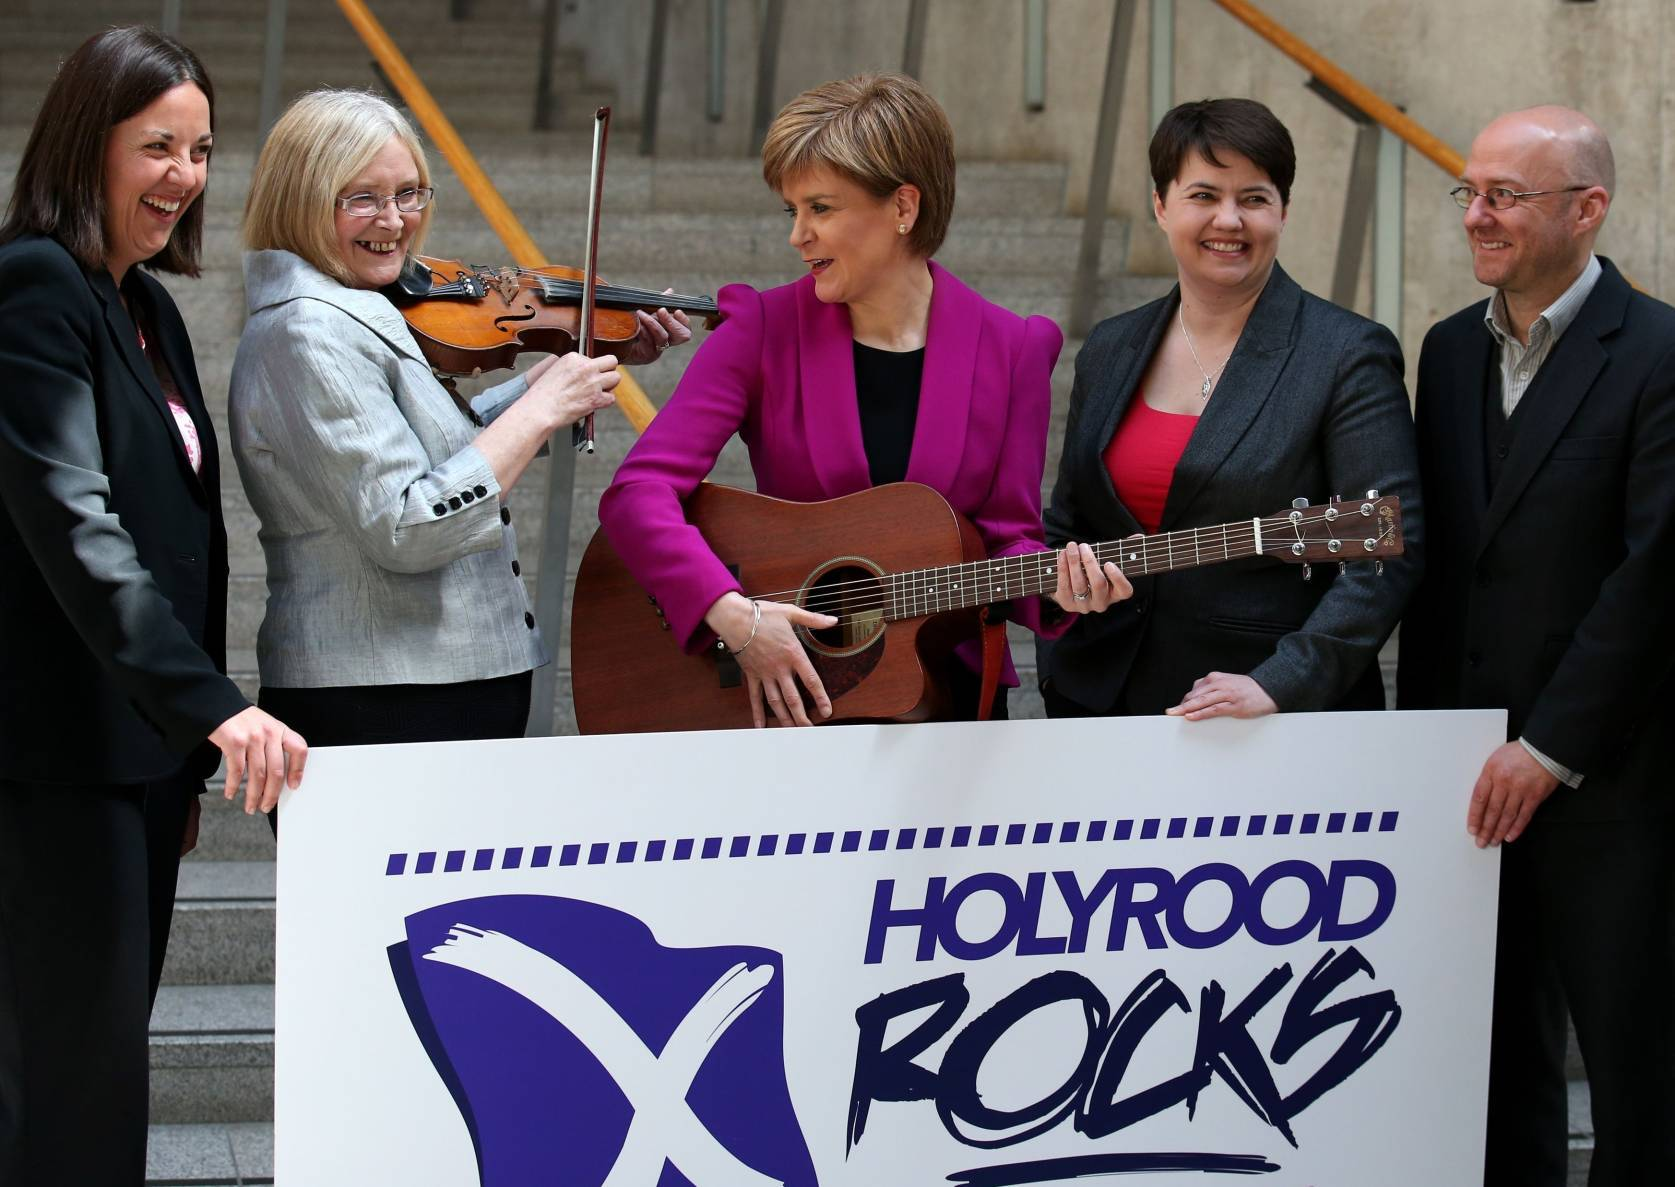 First Minister Nicola Sturgeon (centre) and Presiding Officer Tricia Marwick(second left) join Scottish Labour leader in the Scottish Parliament Kezia Dugdale (far left) Scottish Conservative leader Ruth Davidson (third right), Scottish Green Party leader Patrick Harvie (right), as they launch Holyrood Rocks